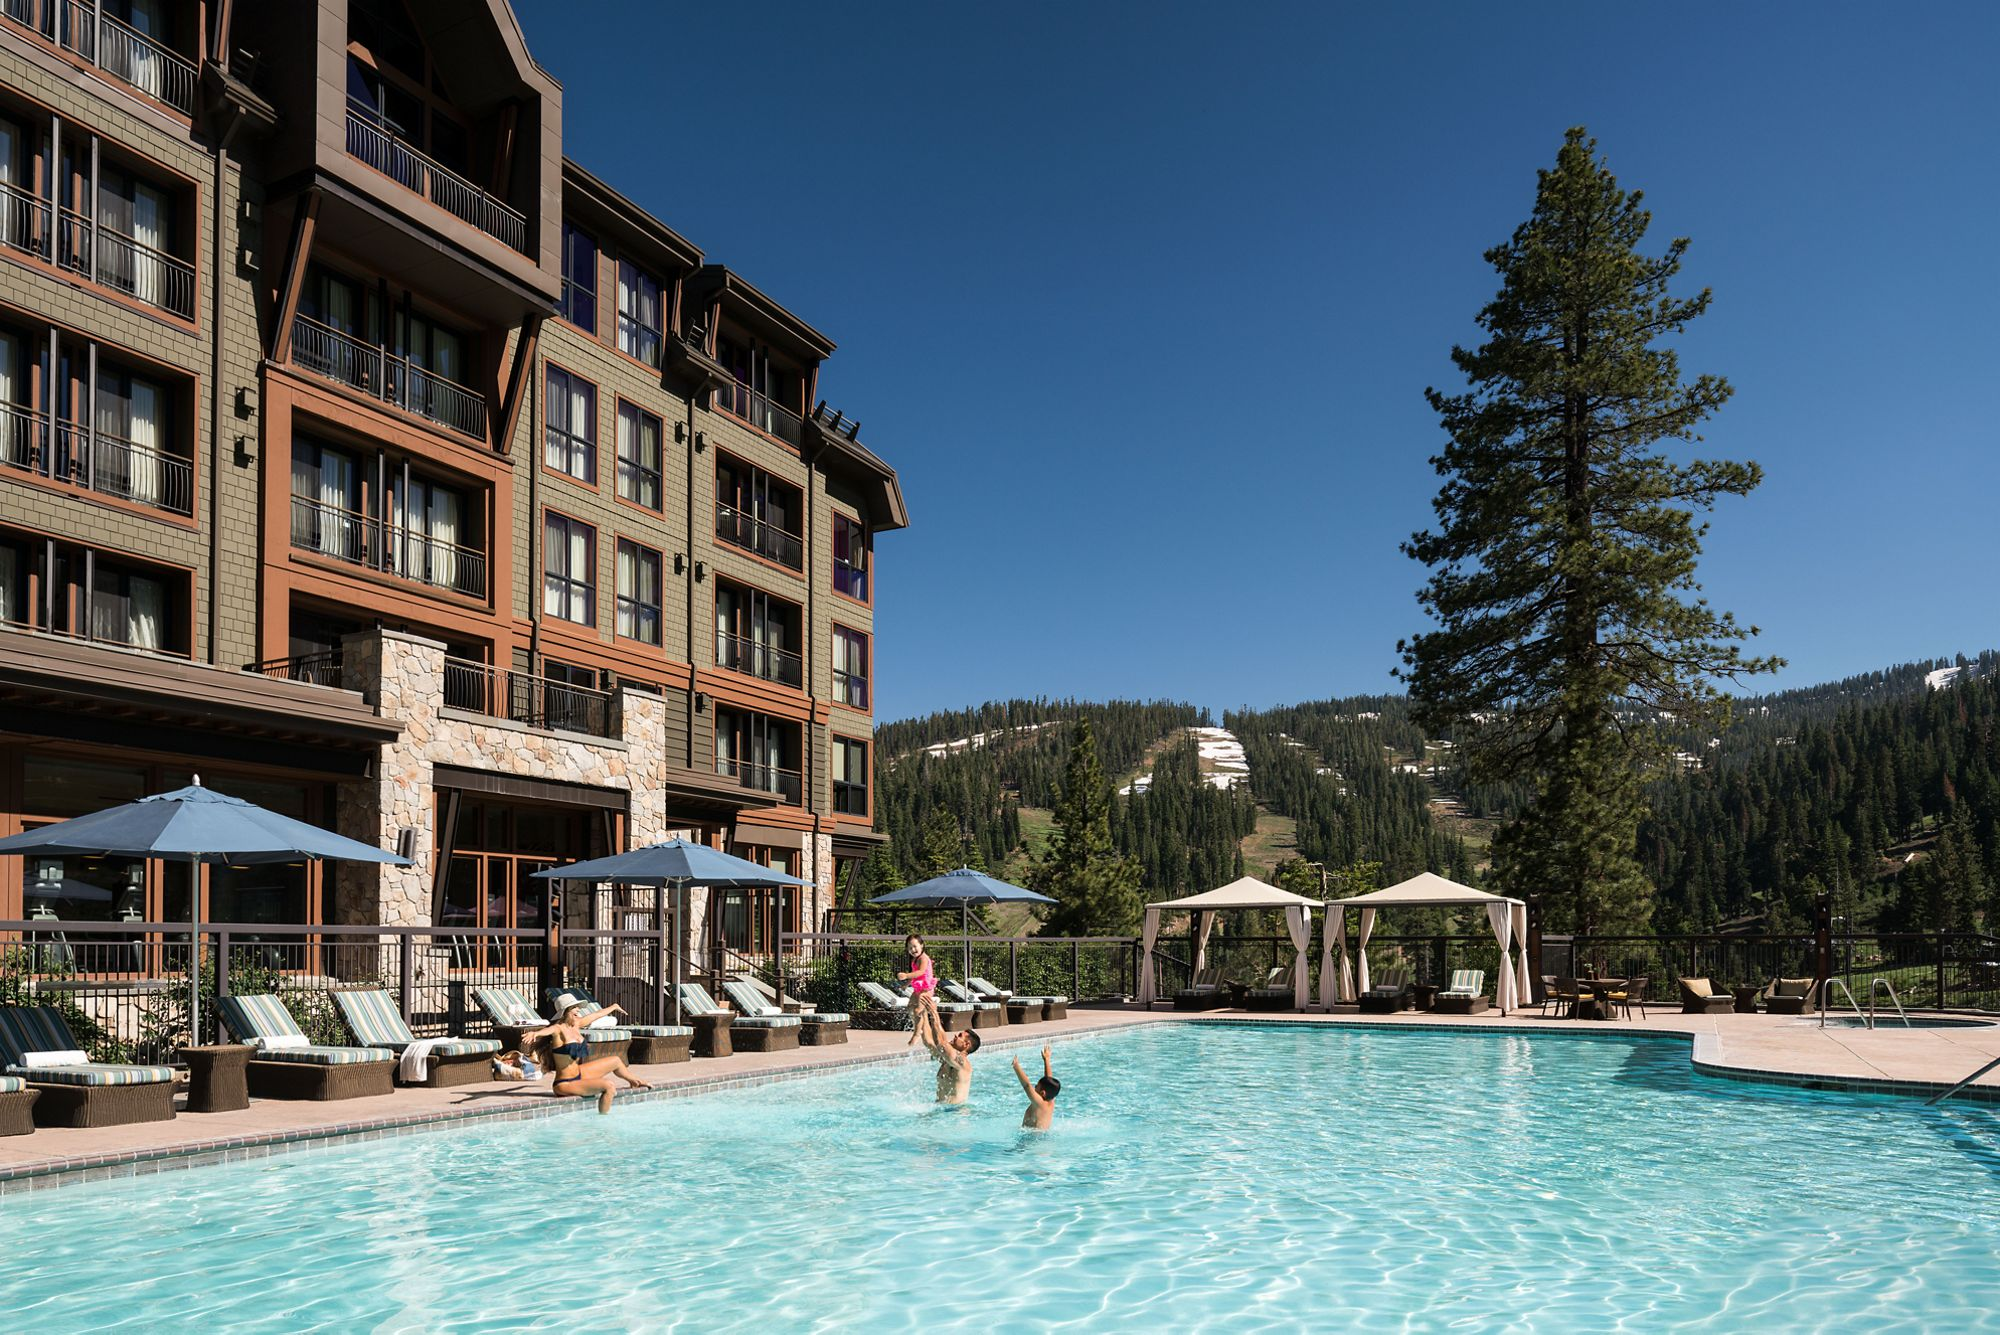 Hotels in North Lake Tahoe - North Lake Tahoe Resorts | The